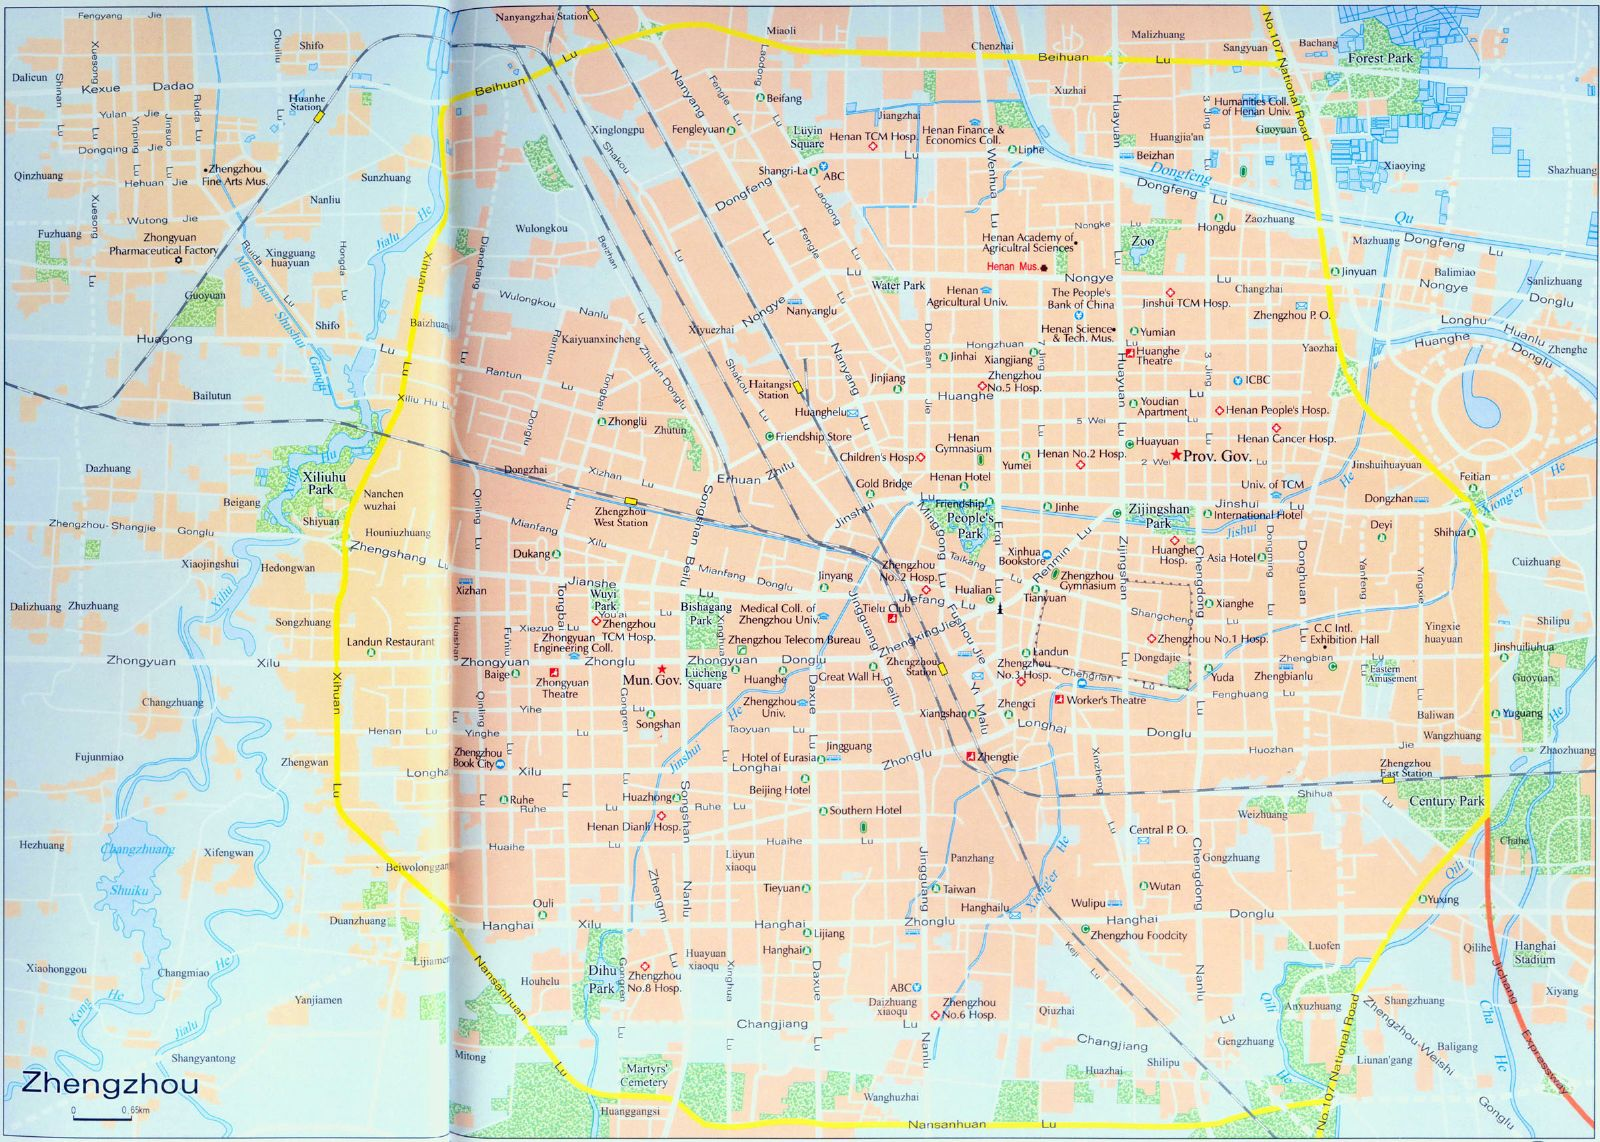 Zhengzhou City Map